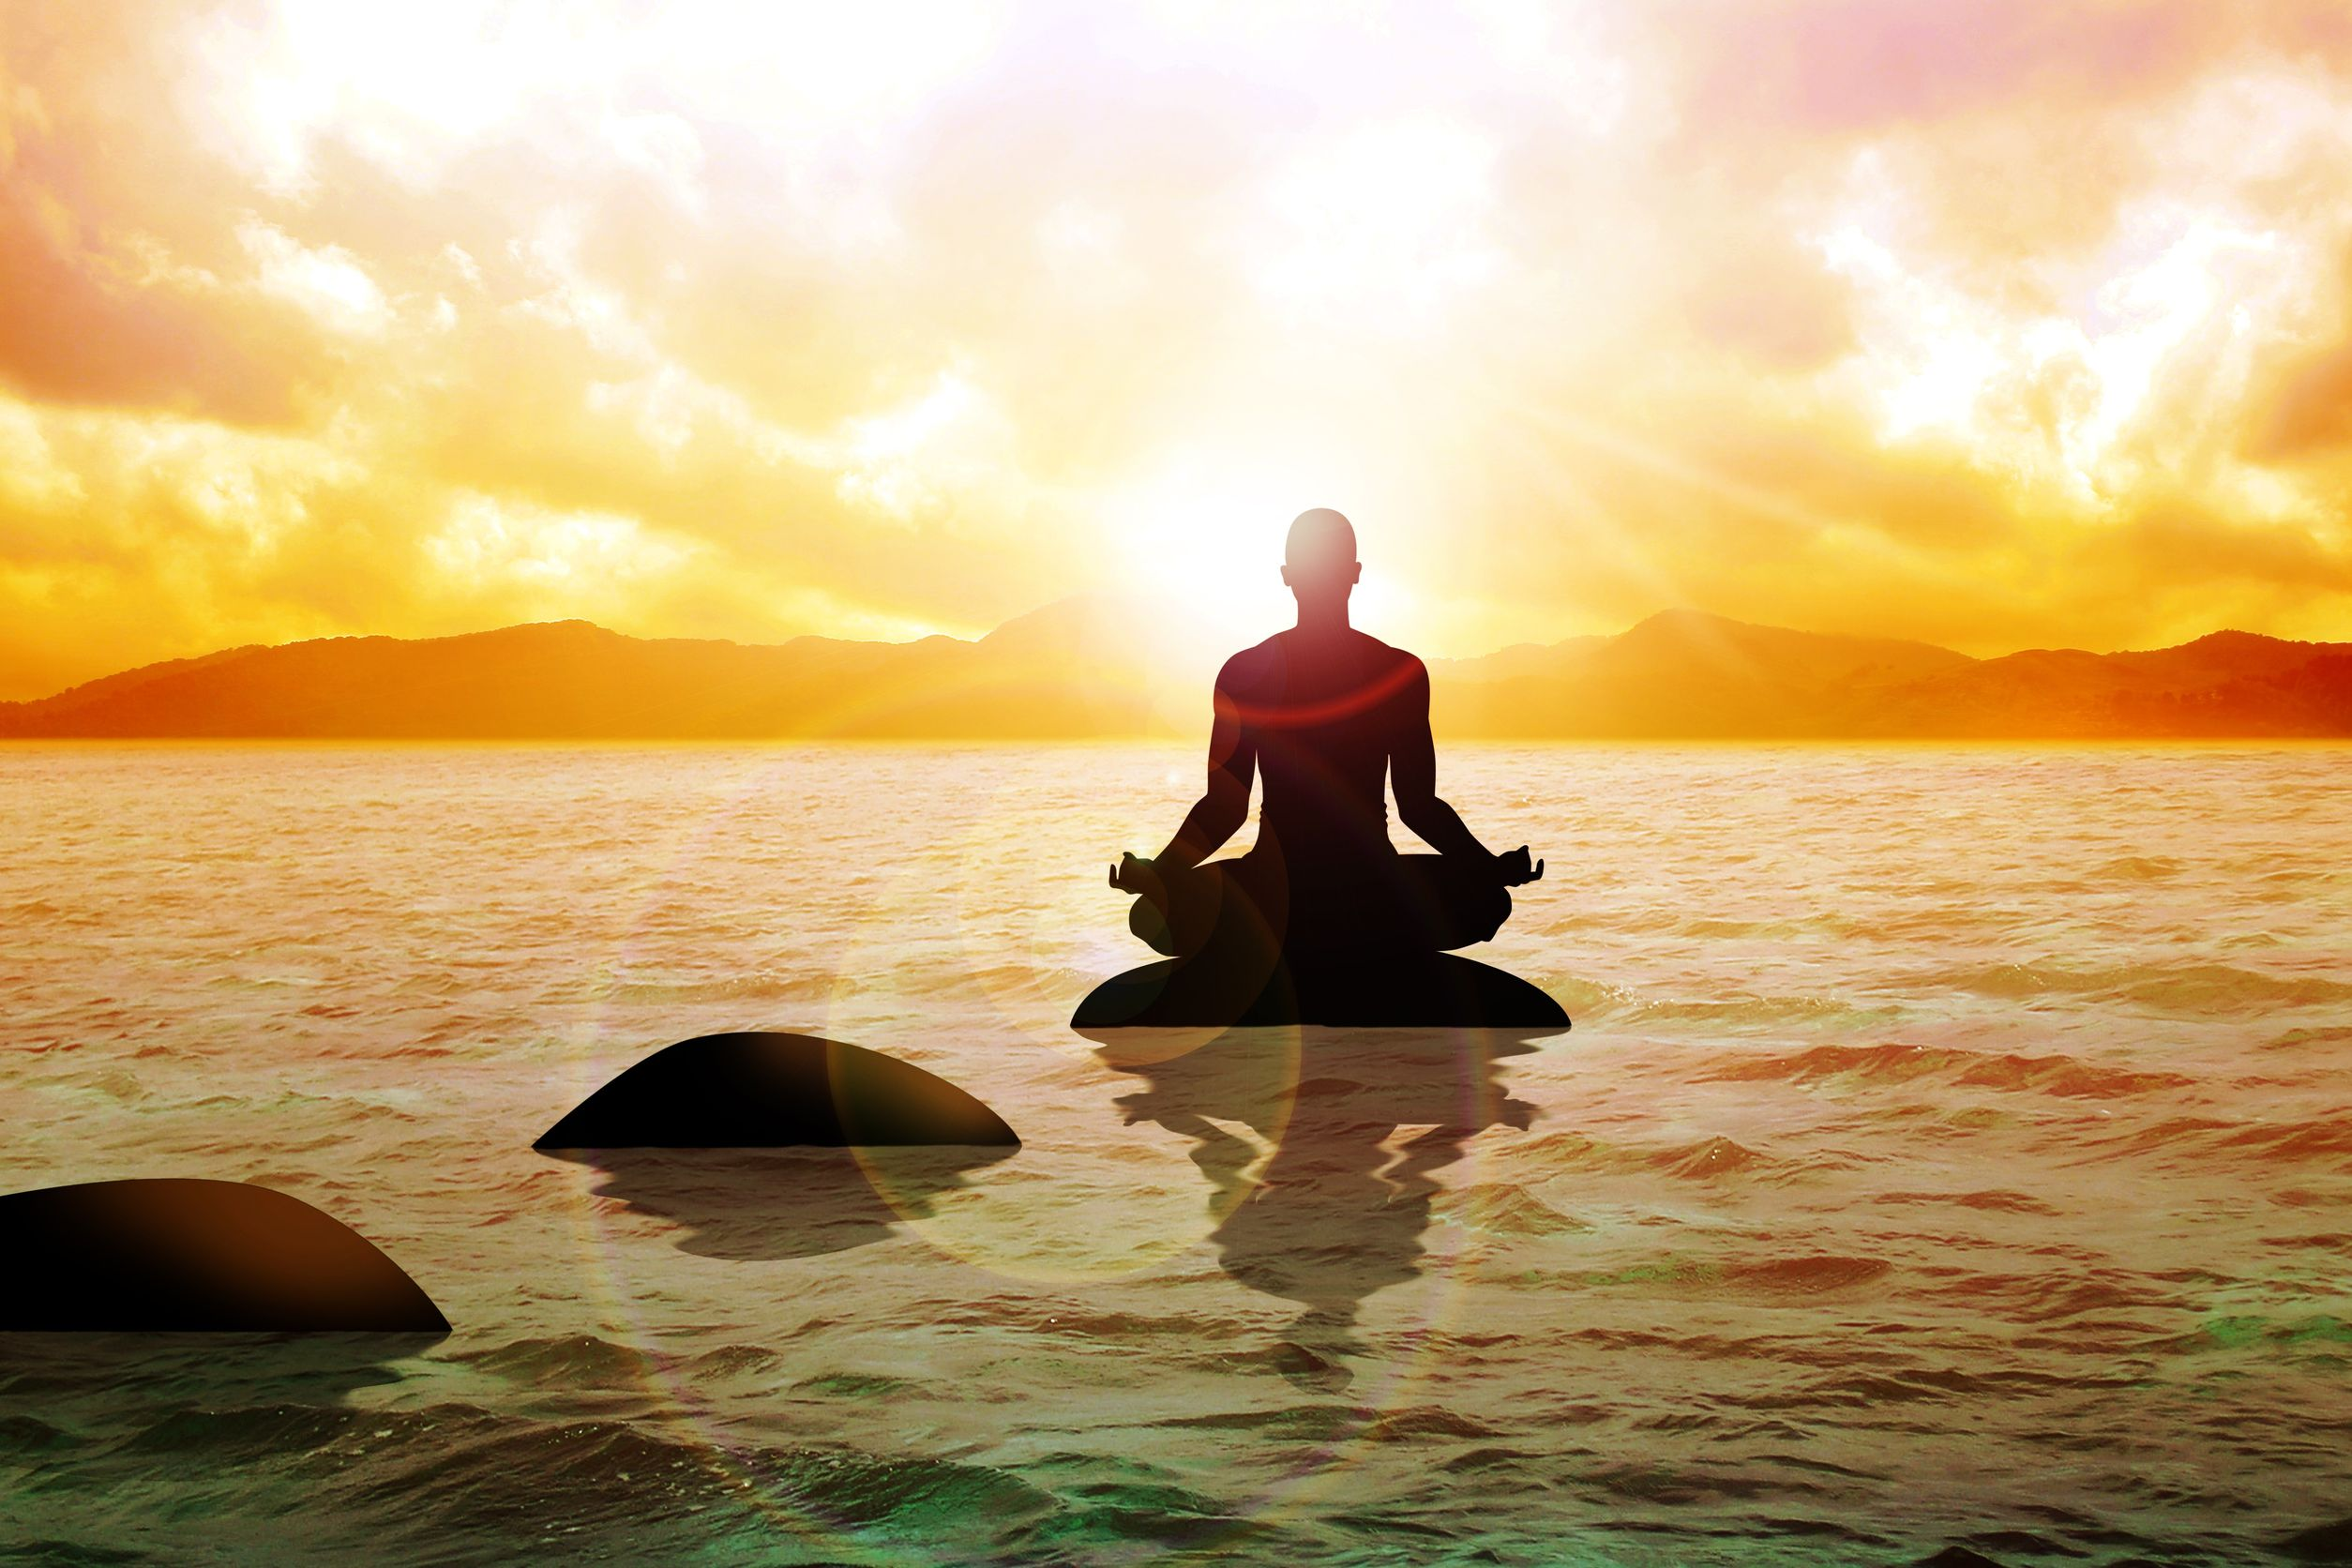 15941951 - silhouette of a man figure meditating on calm water during sunrise